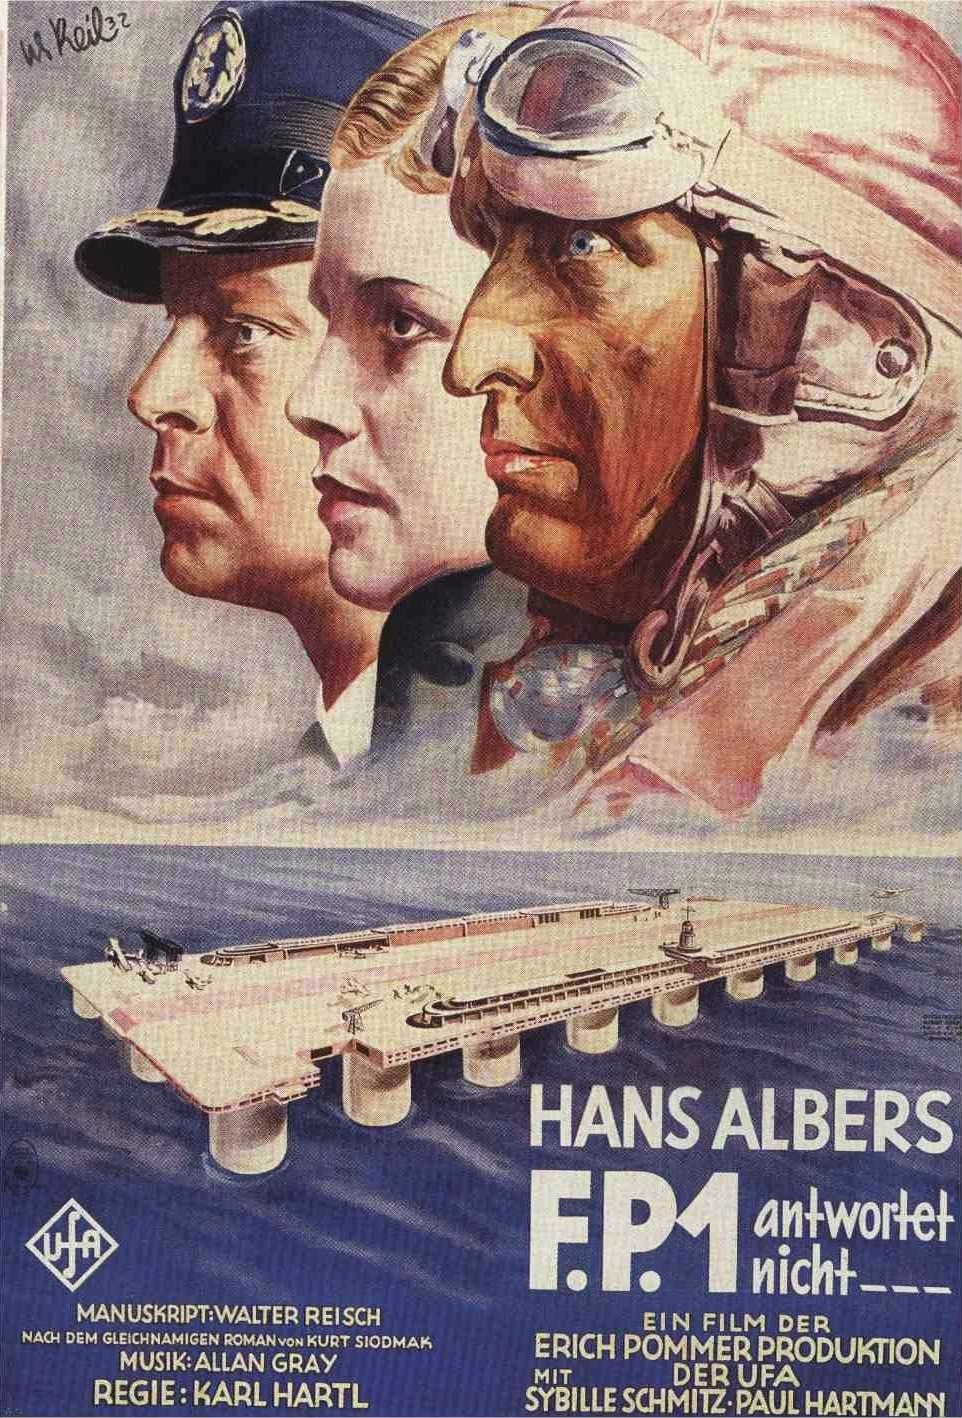 F.P.1 antwortet nicht (F.P.1 doesn't answer, 1932) with Hans Albers; German poster